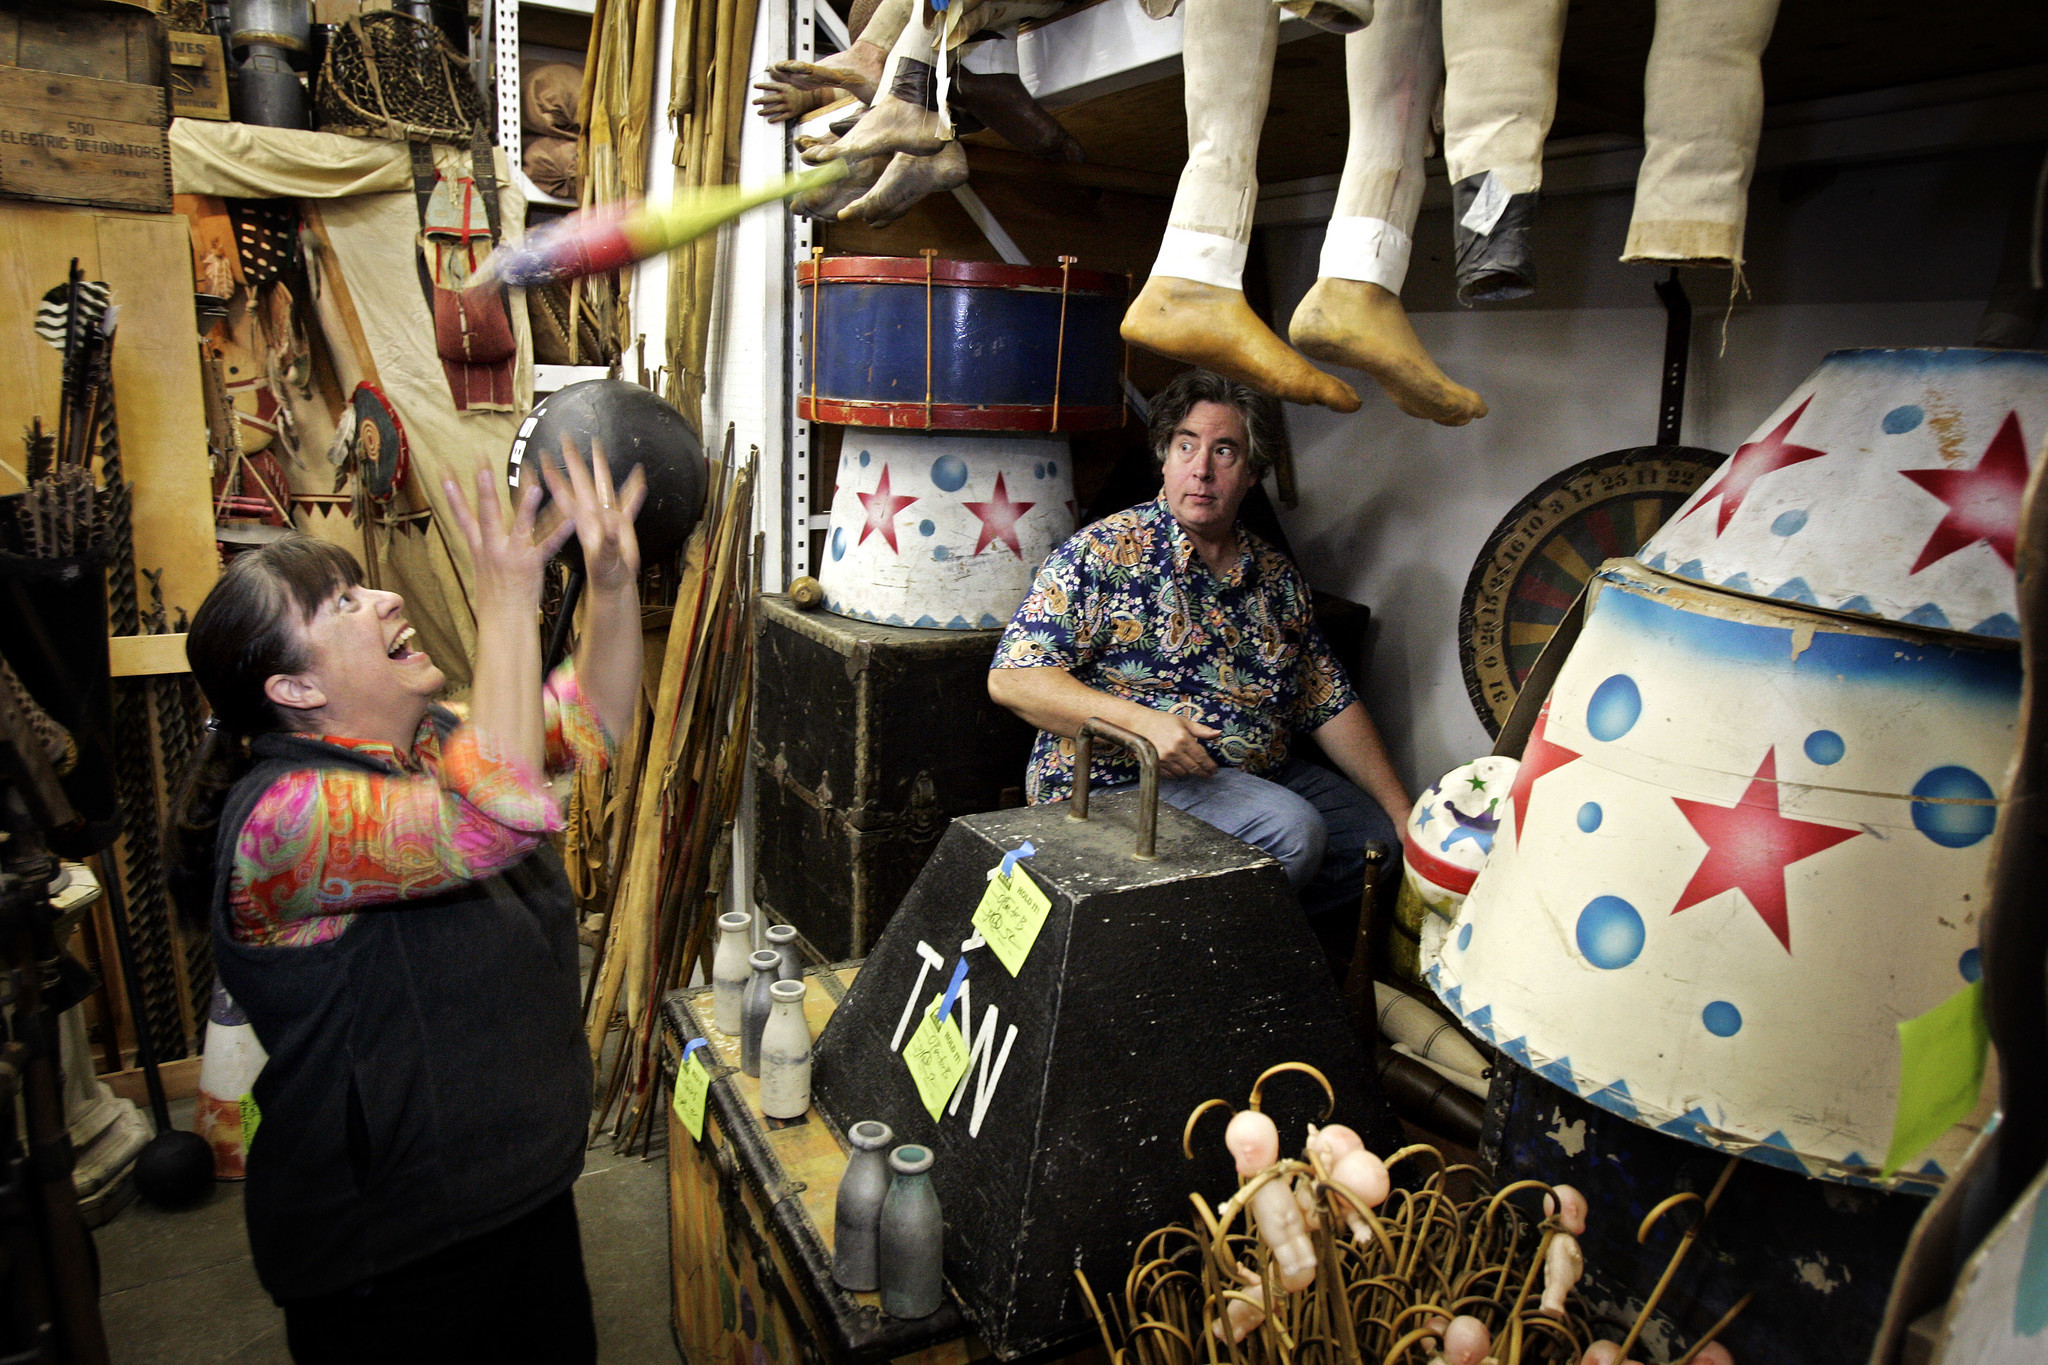 """Pam Elyea catches a juggling pin thrown by her husband, Jim, while gathering props for the film """"Water for Elephants"""" in 2010 at their store History for Hire, a prop shop specializing in period and historical items."""